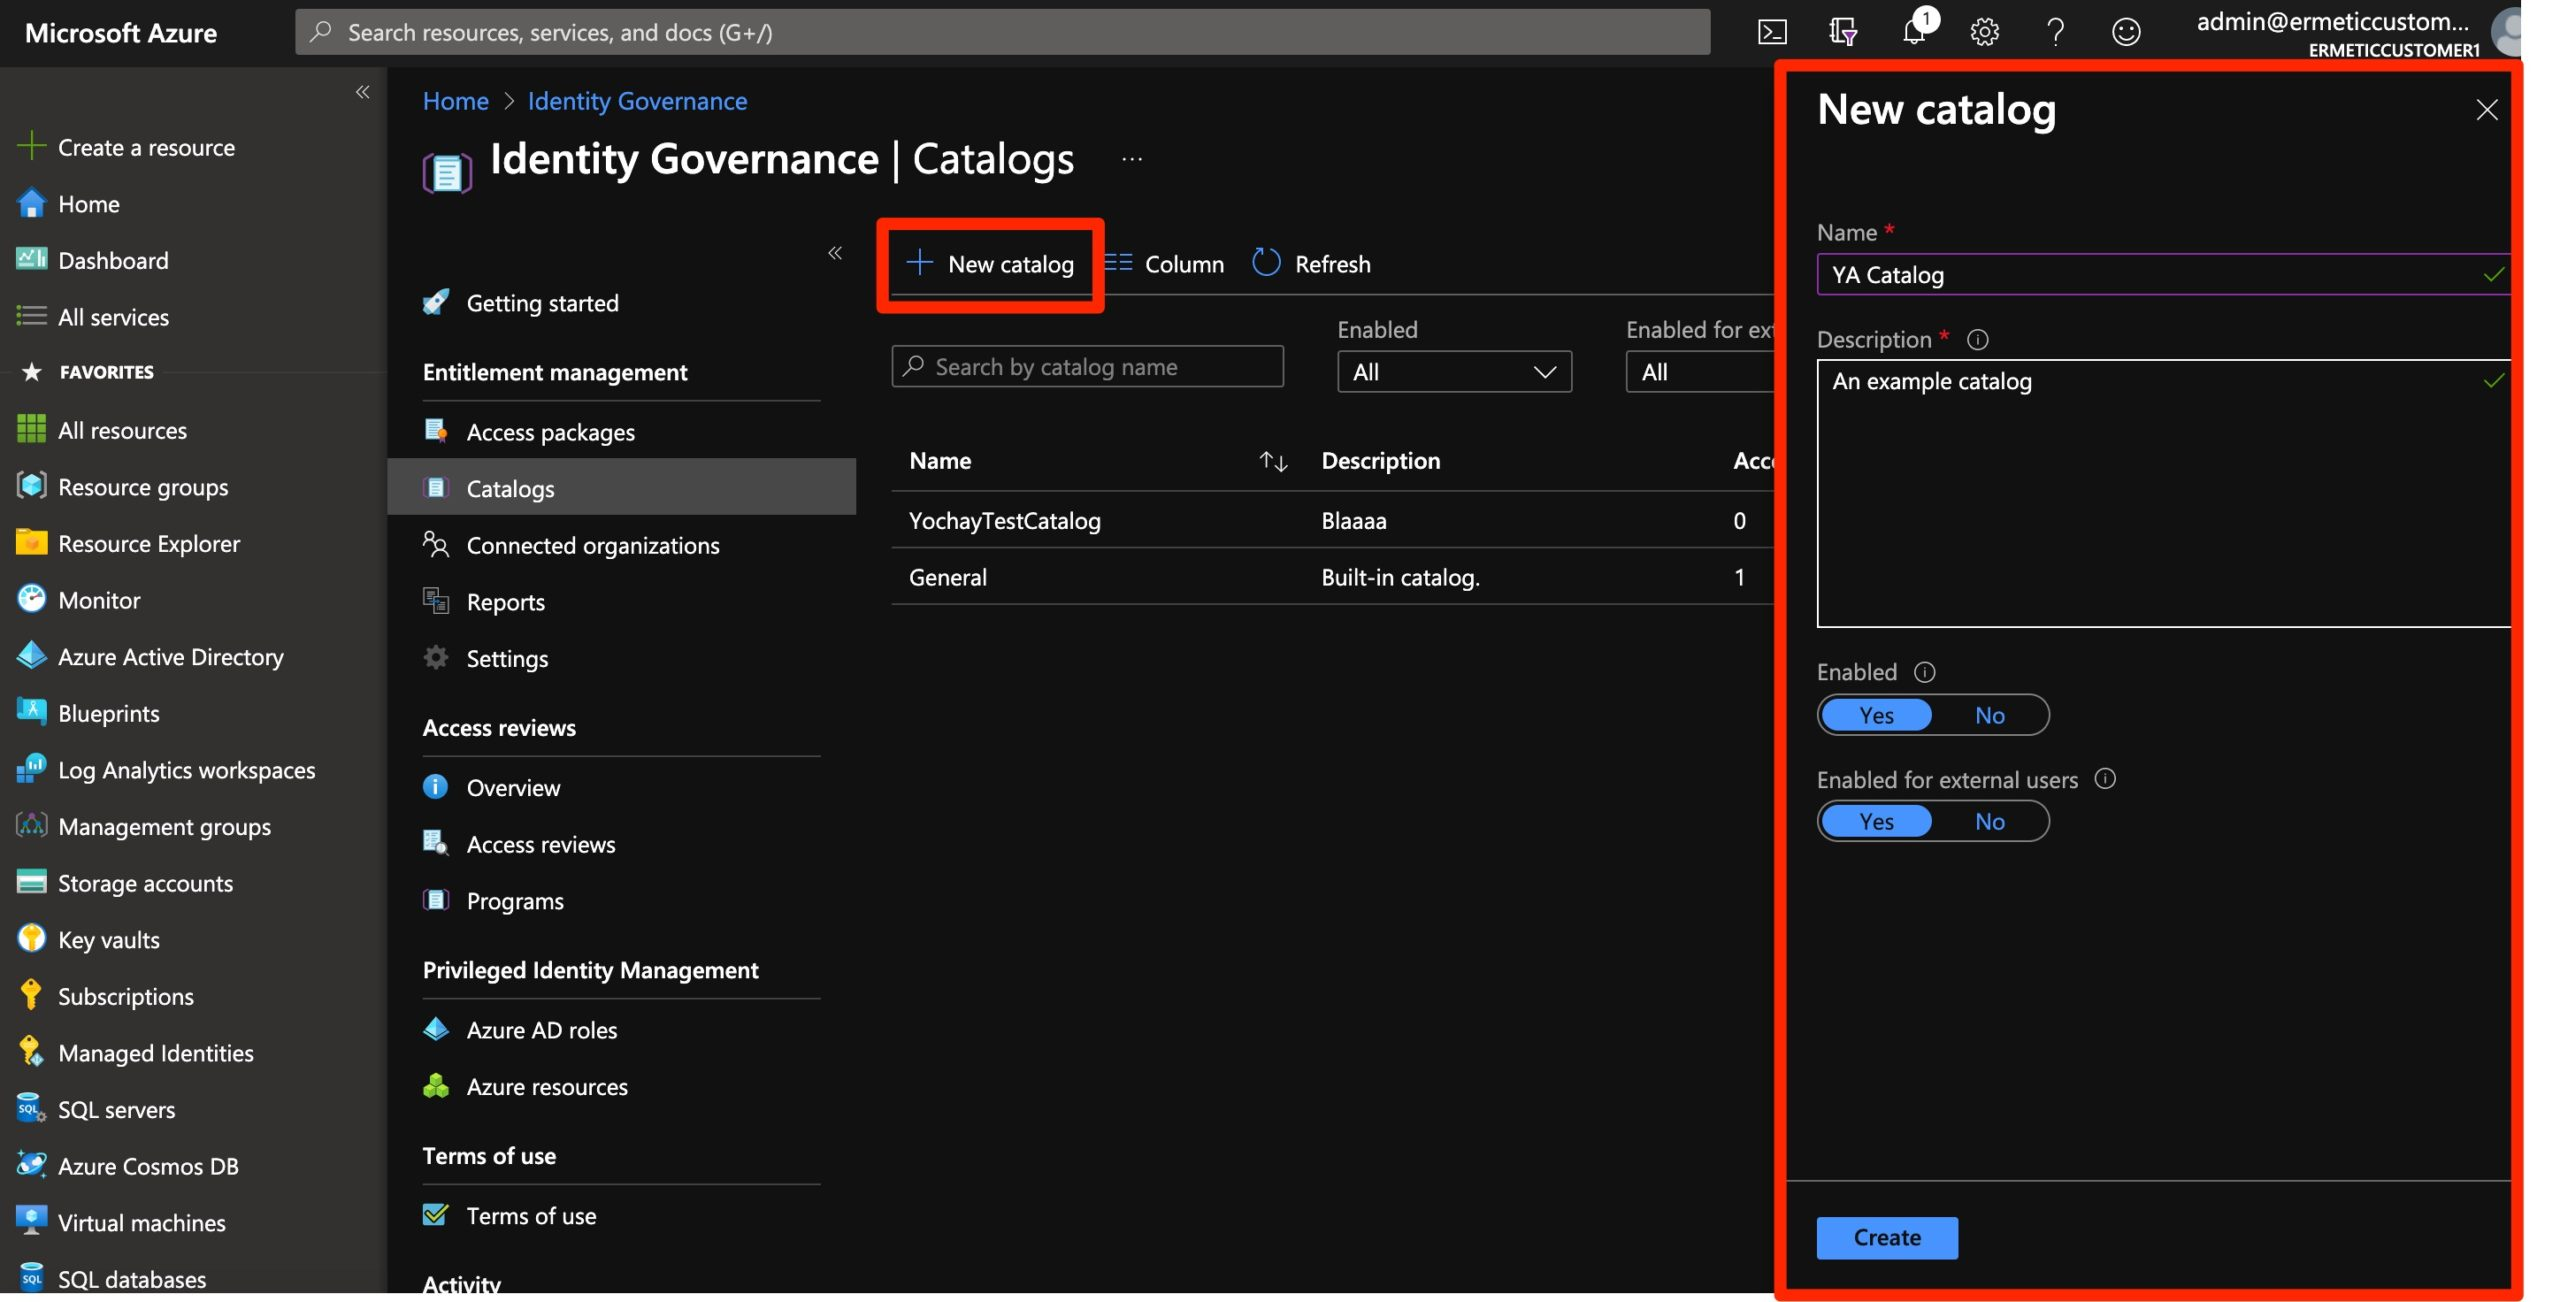 Figure 6 - Creating a new catalog for Entitlement Management